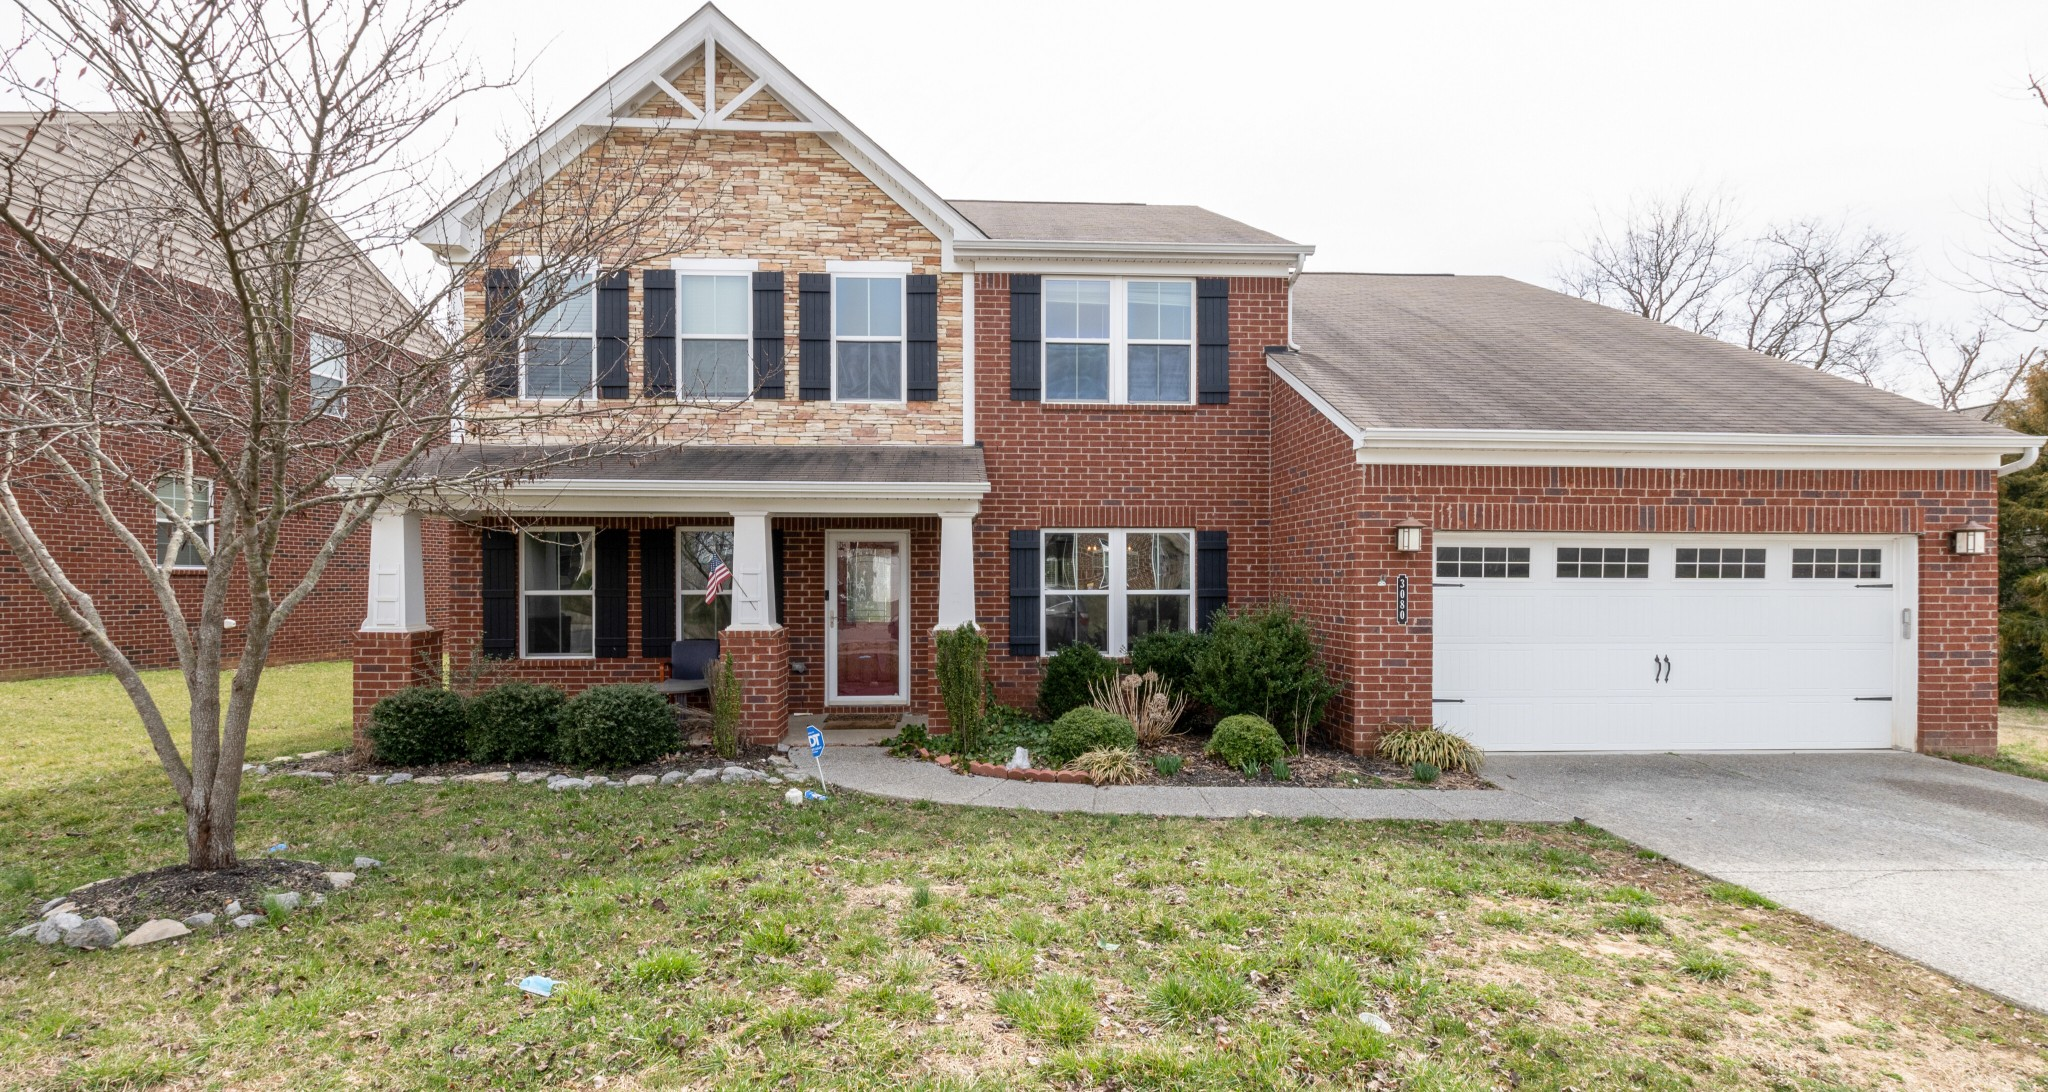 This Gorgeous home offers all the amenities you could want. Includes 4 Bedrooms, 2.5 Baths, Home Office, Dining Room, Living Room, Family Den, 9' Ceilings, Hardwoods throughout, Morning Room & an Open Kitchen. On a private lot that backs up to trees & common area. Back to market due to financing.